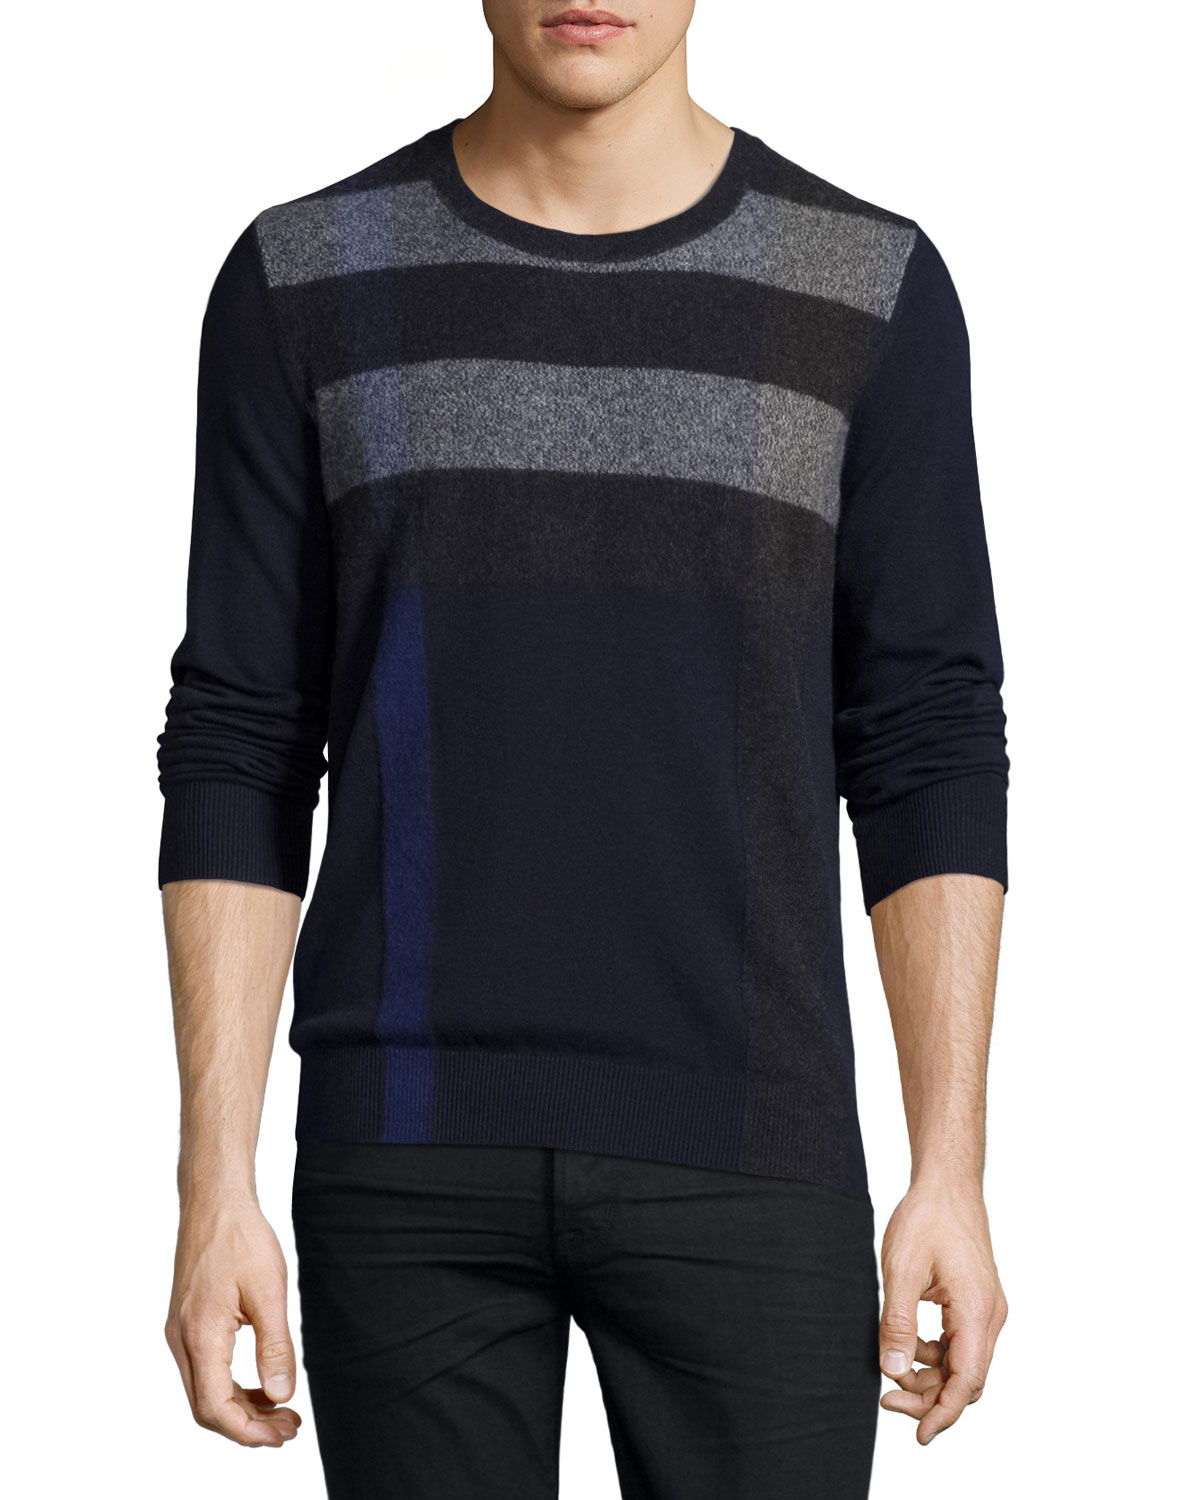 Feldon Graphic Check Cashmere-Cotton Sweater, Navy